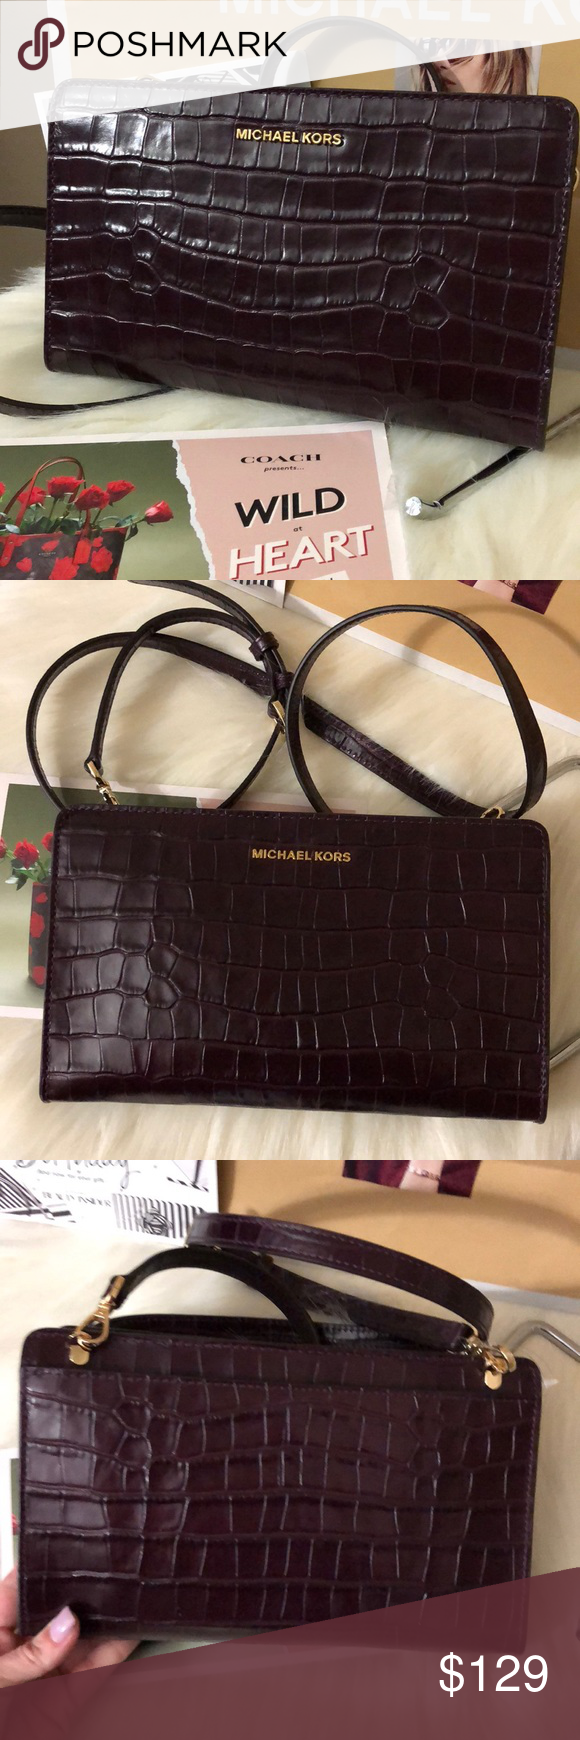 156a8c40d4be NWT Michael Kors Damson Crossbody New with tags Michael Kors croc-embossed  leather crossbody Convertible